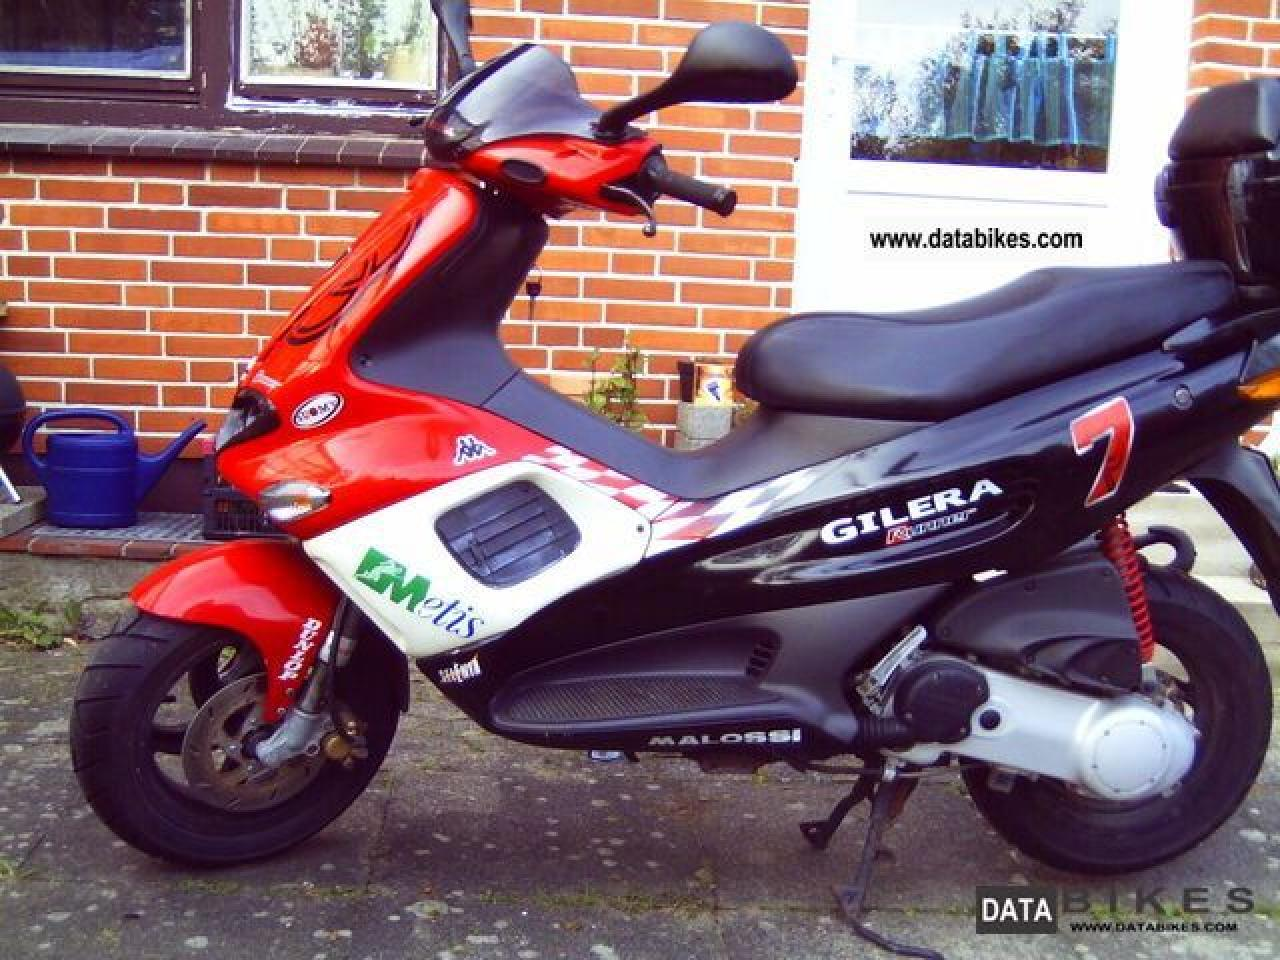 Gilera 50 Runner Racing Replica images #73883